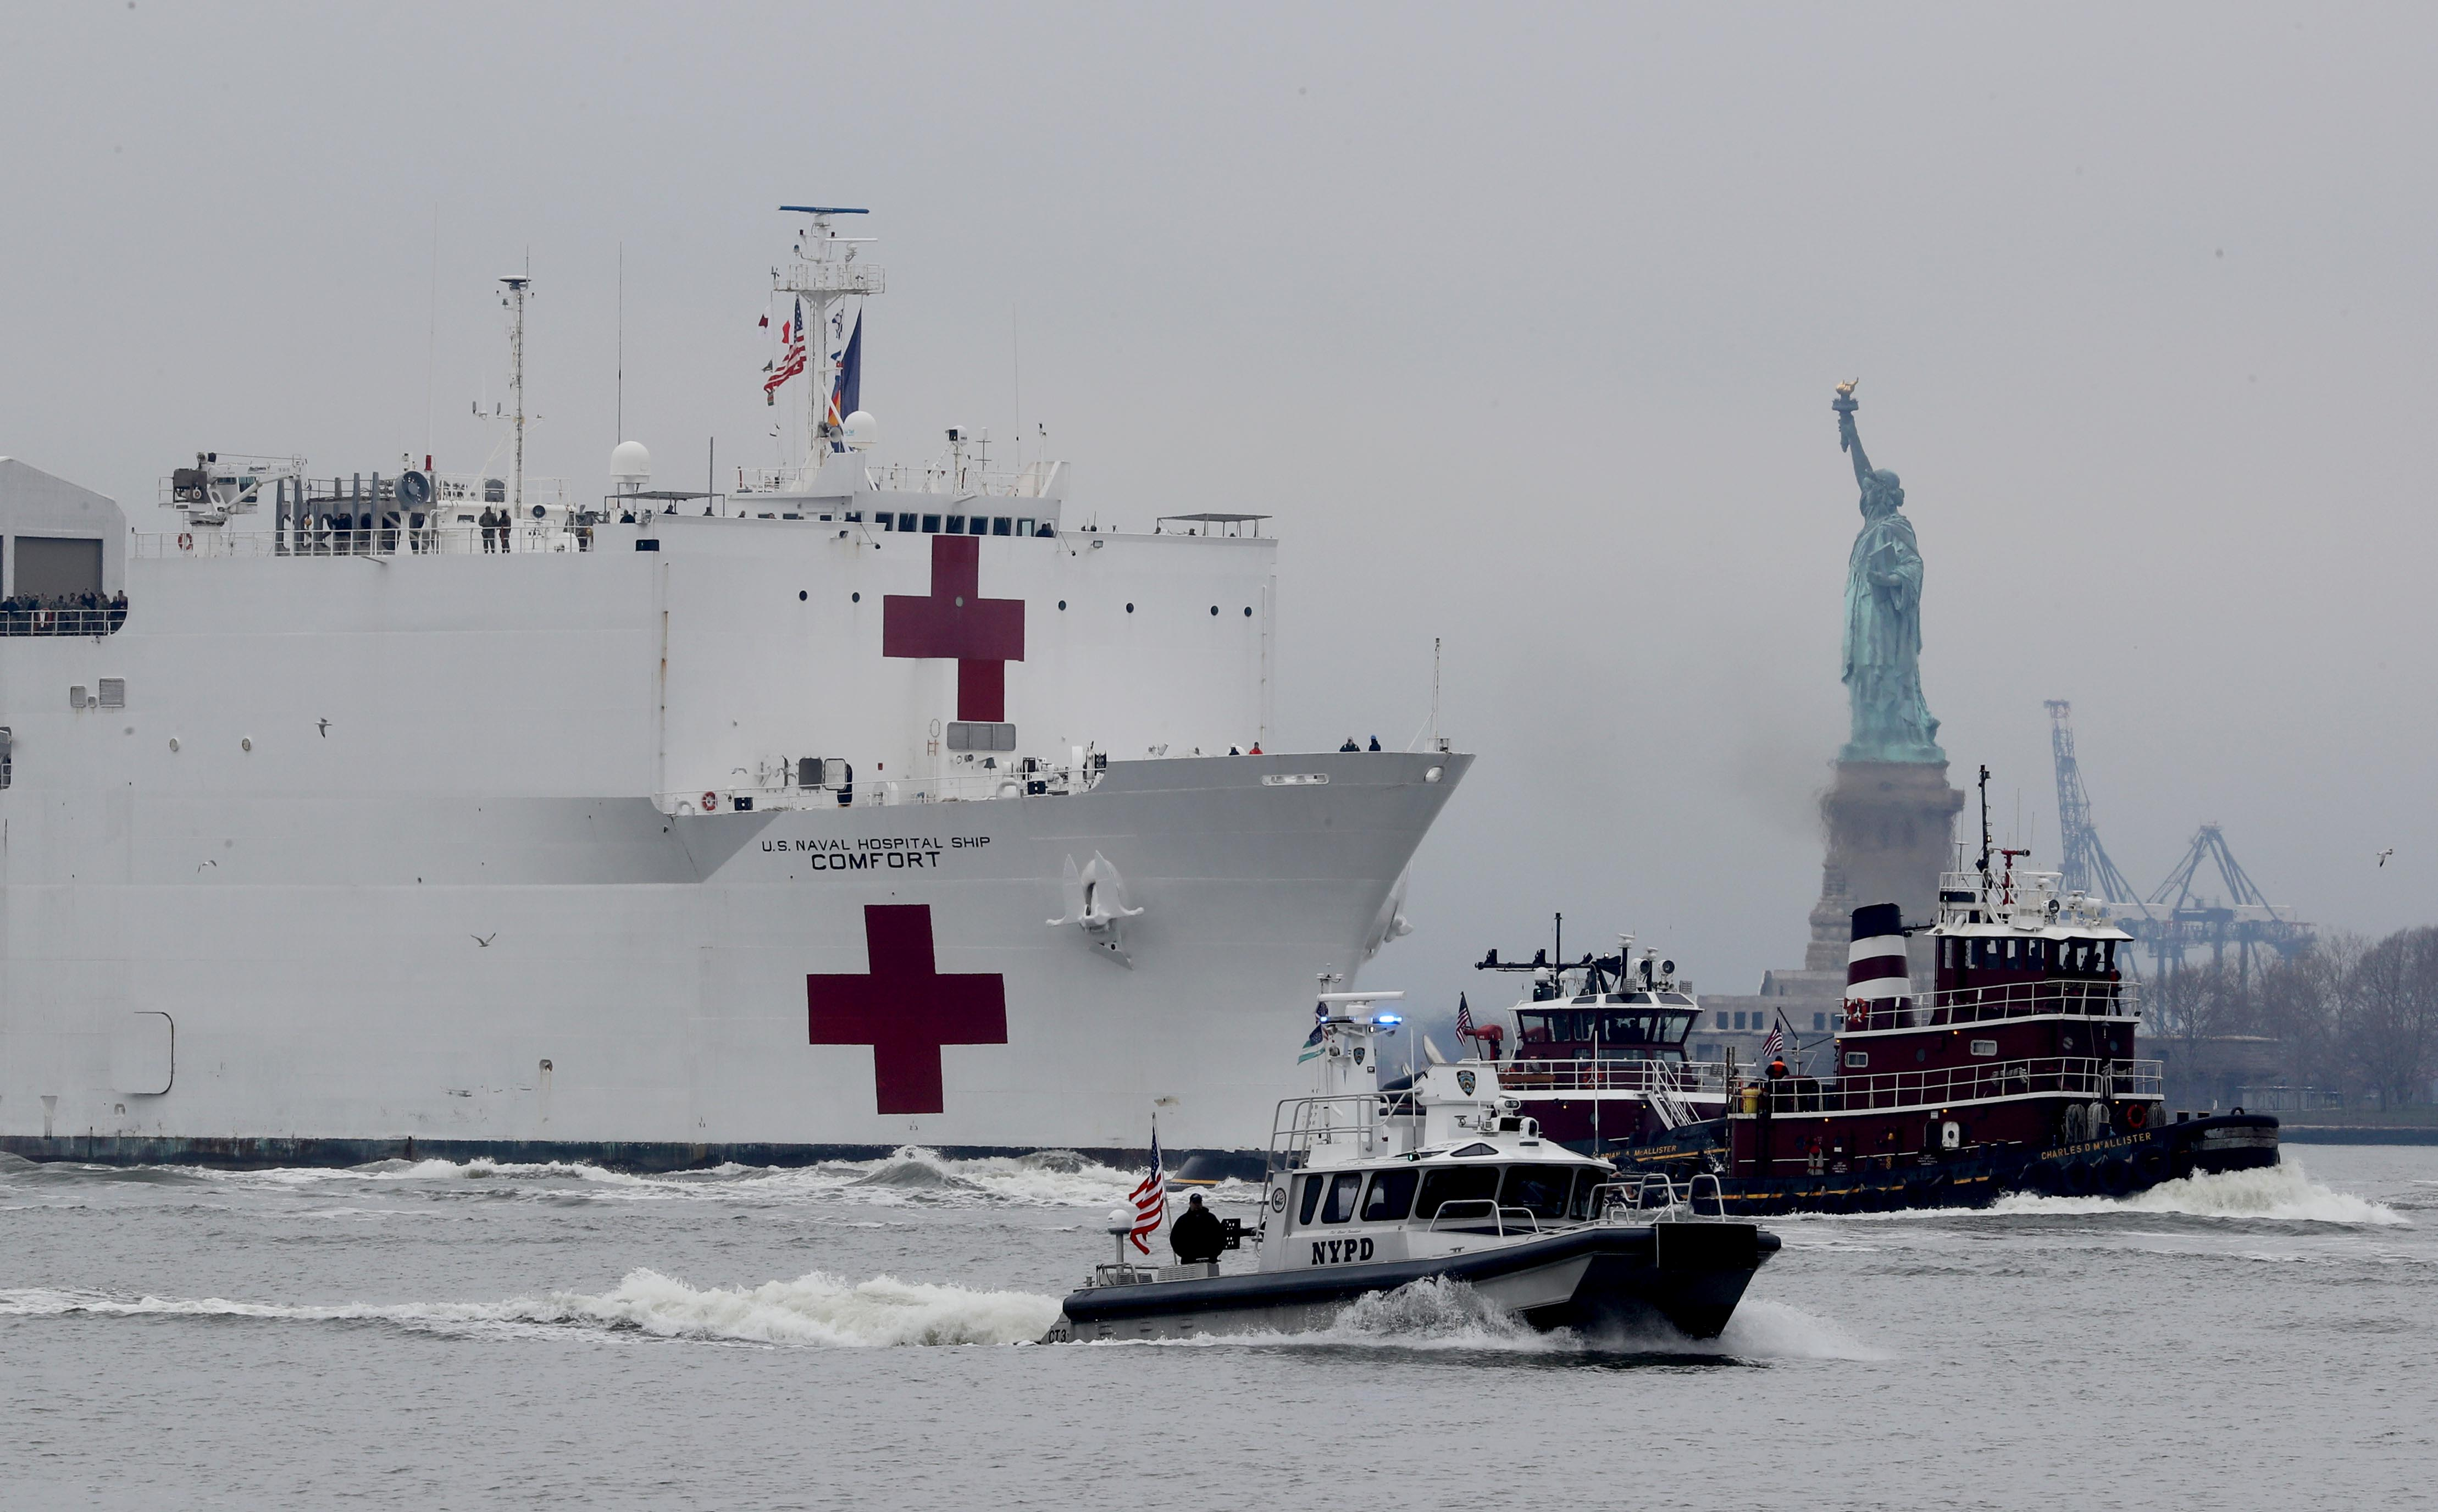 Coronavirus live updates: USNS Comfort arrives in NYC; Anthony Fauci defends extension of social distancing rules